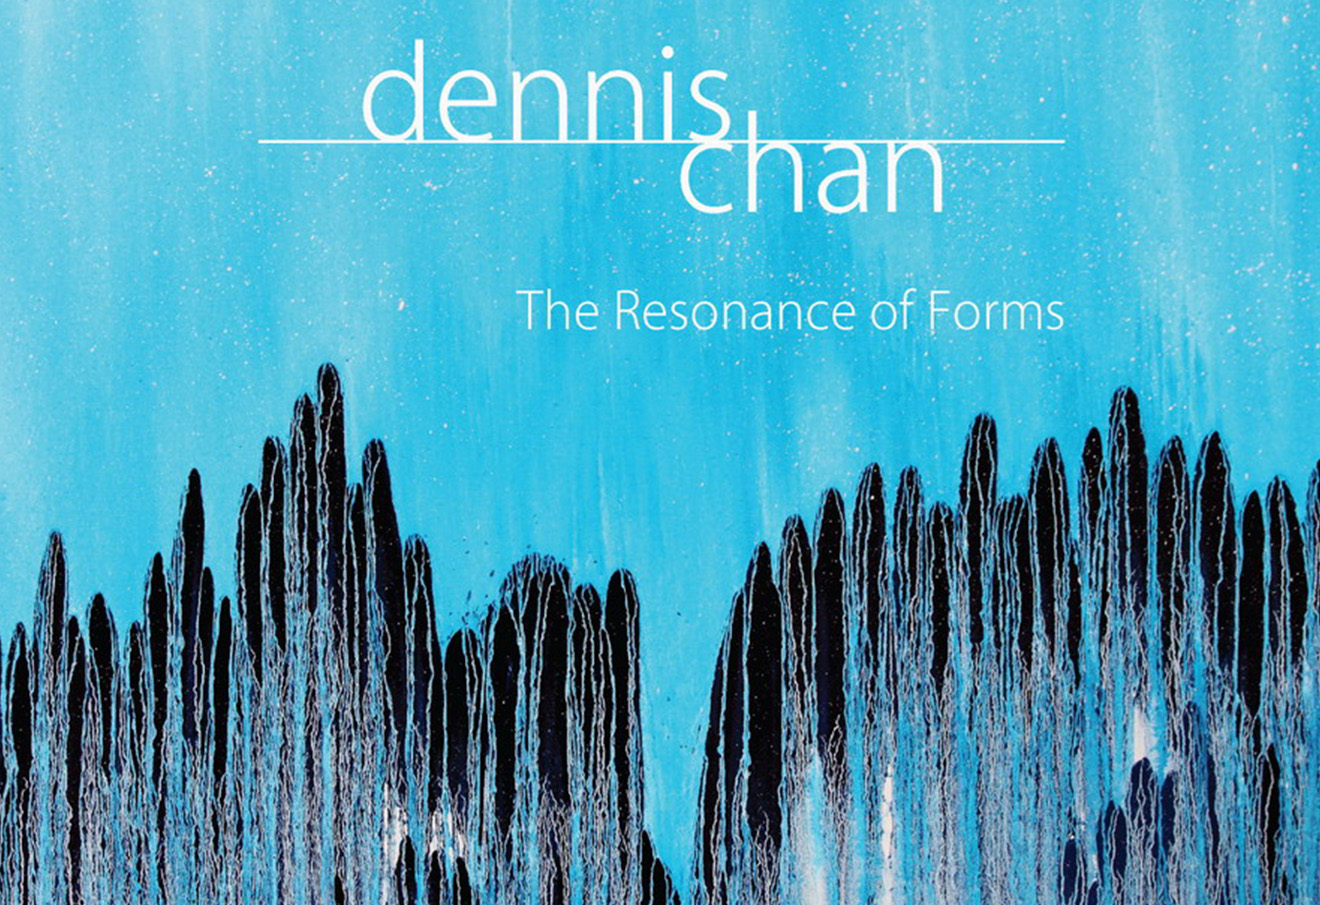 The Resonance of Forms